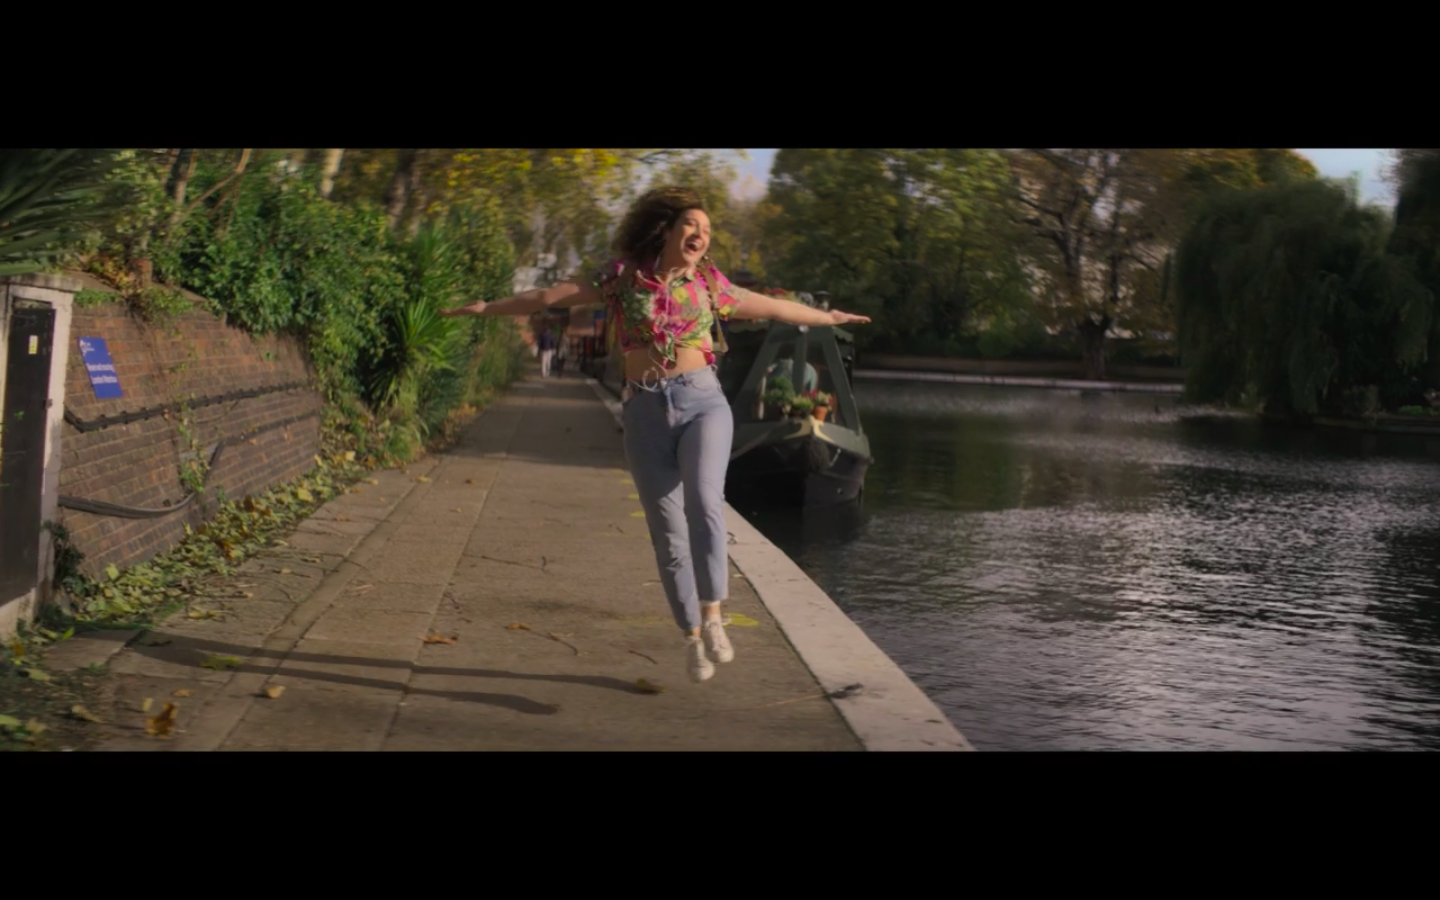 Jessie in light wash high-waisted, tapered jeans, white sneakers, and a floral top tied above her navel, leaping with her arms spread wide and her mouth open in joy as she leaves a boat house docked in a canal.